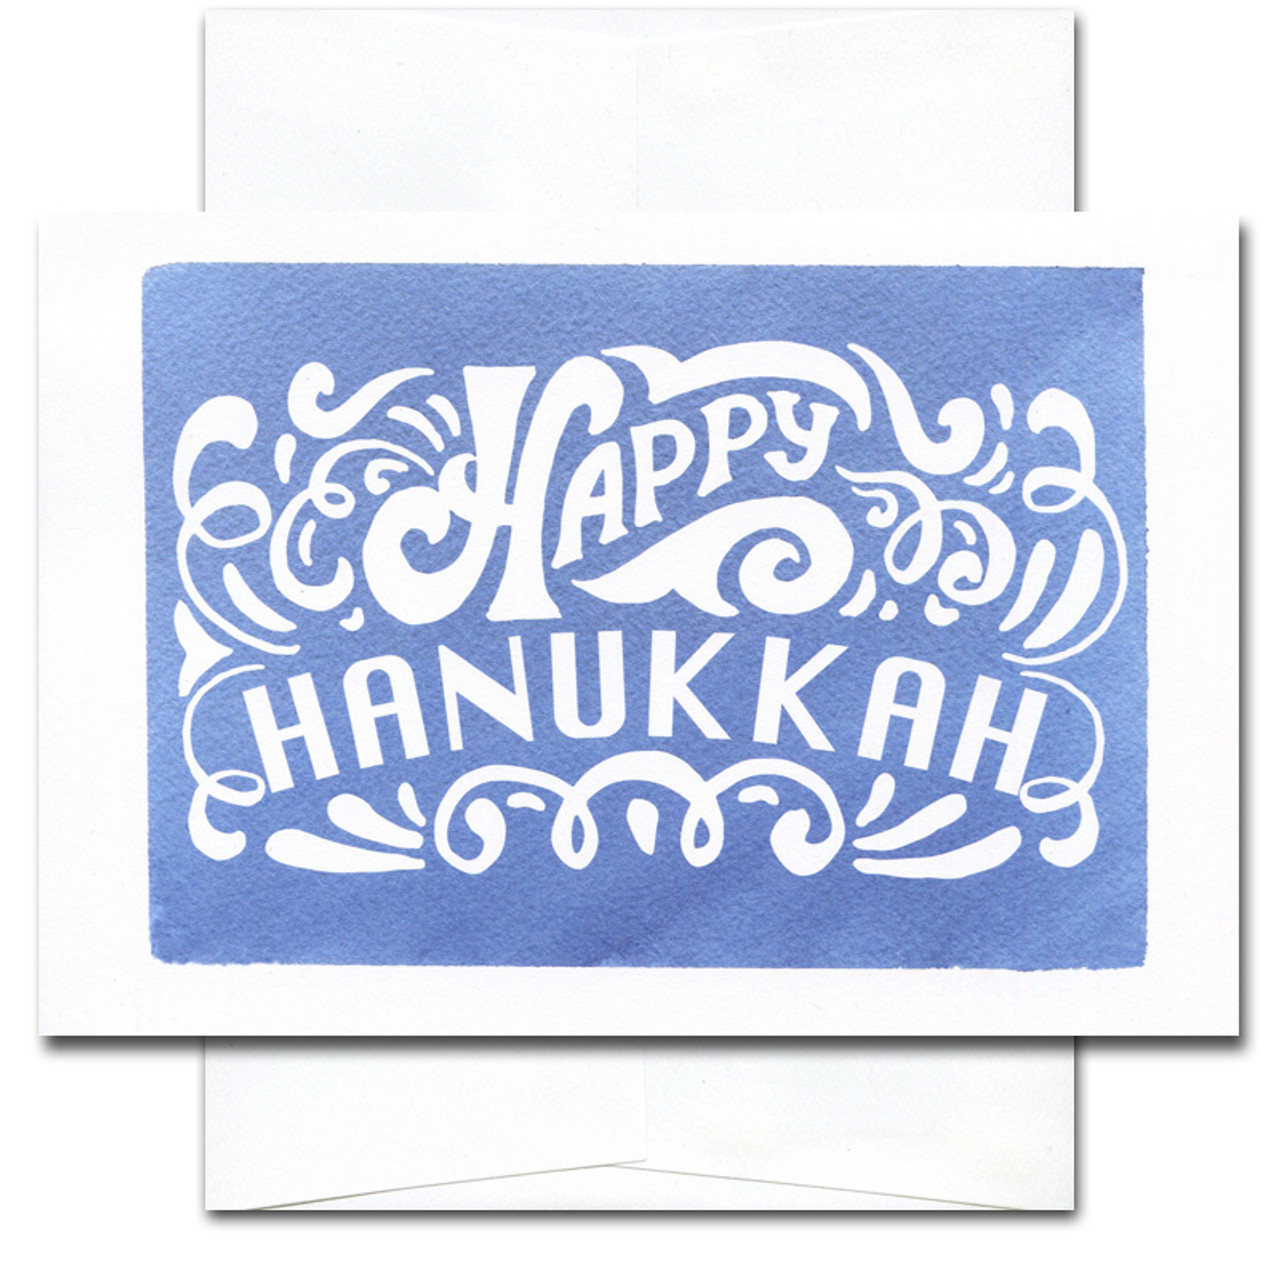 Hanukkah Card - Joy and Light. Cover shows hand-lettered design of the words Happy Hanukkah set against a hand-painted blue watercolor background